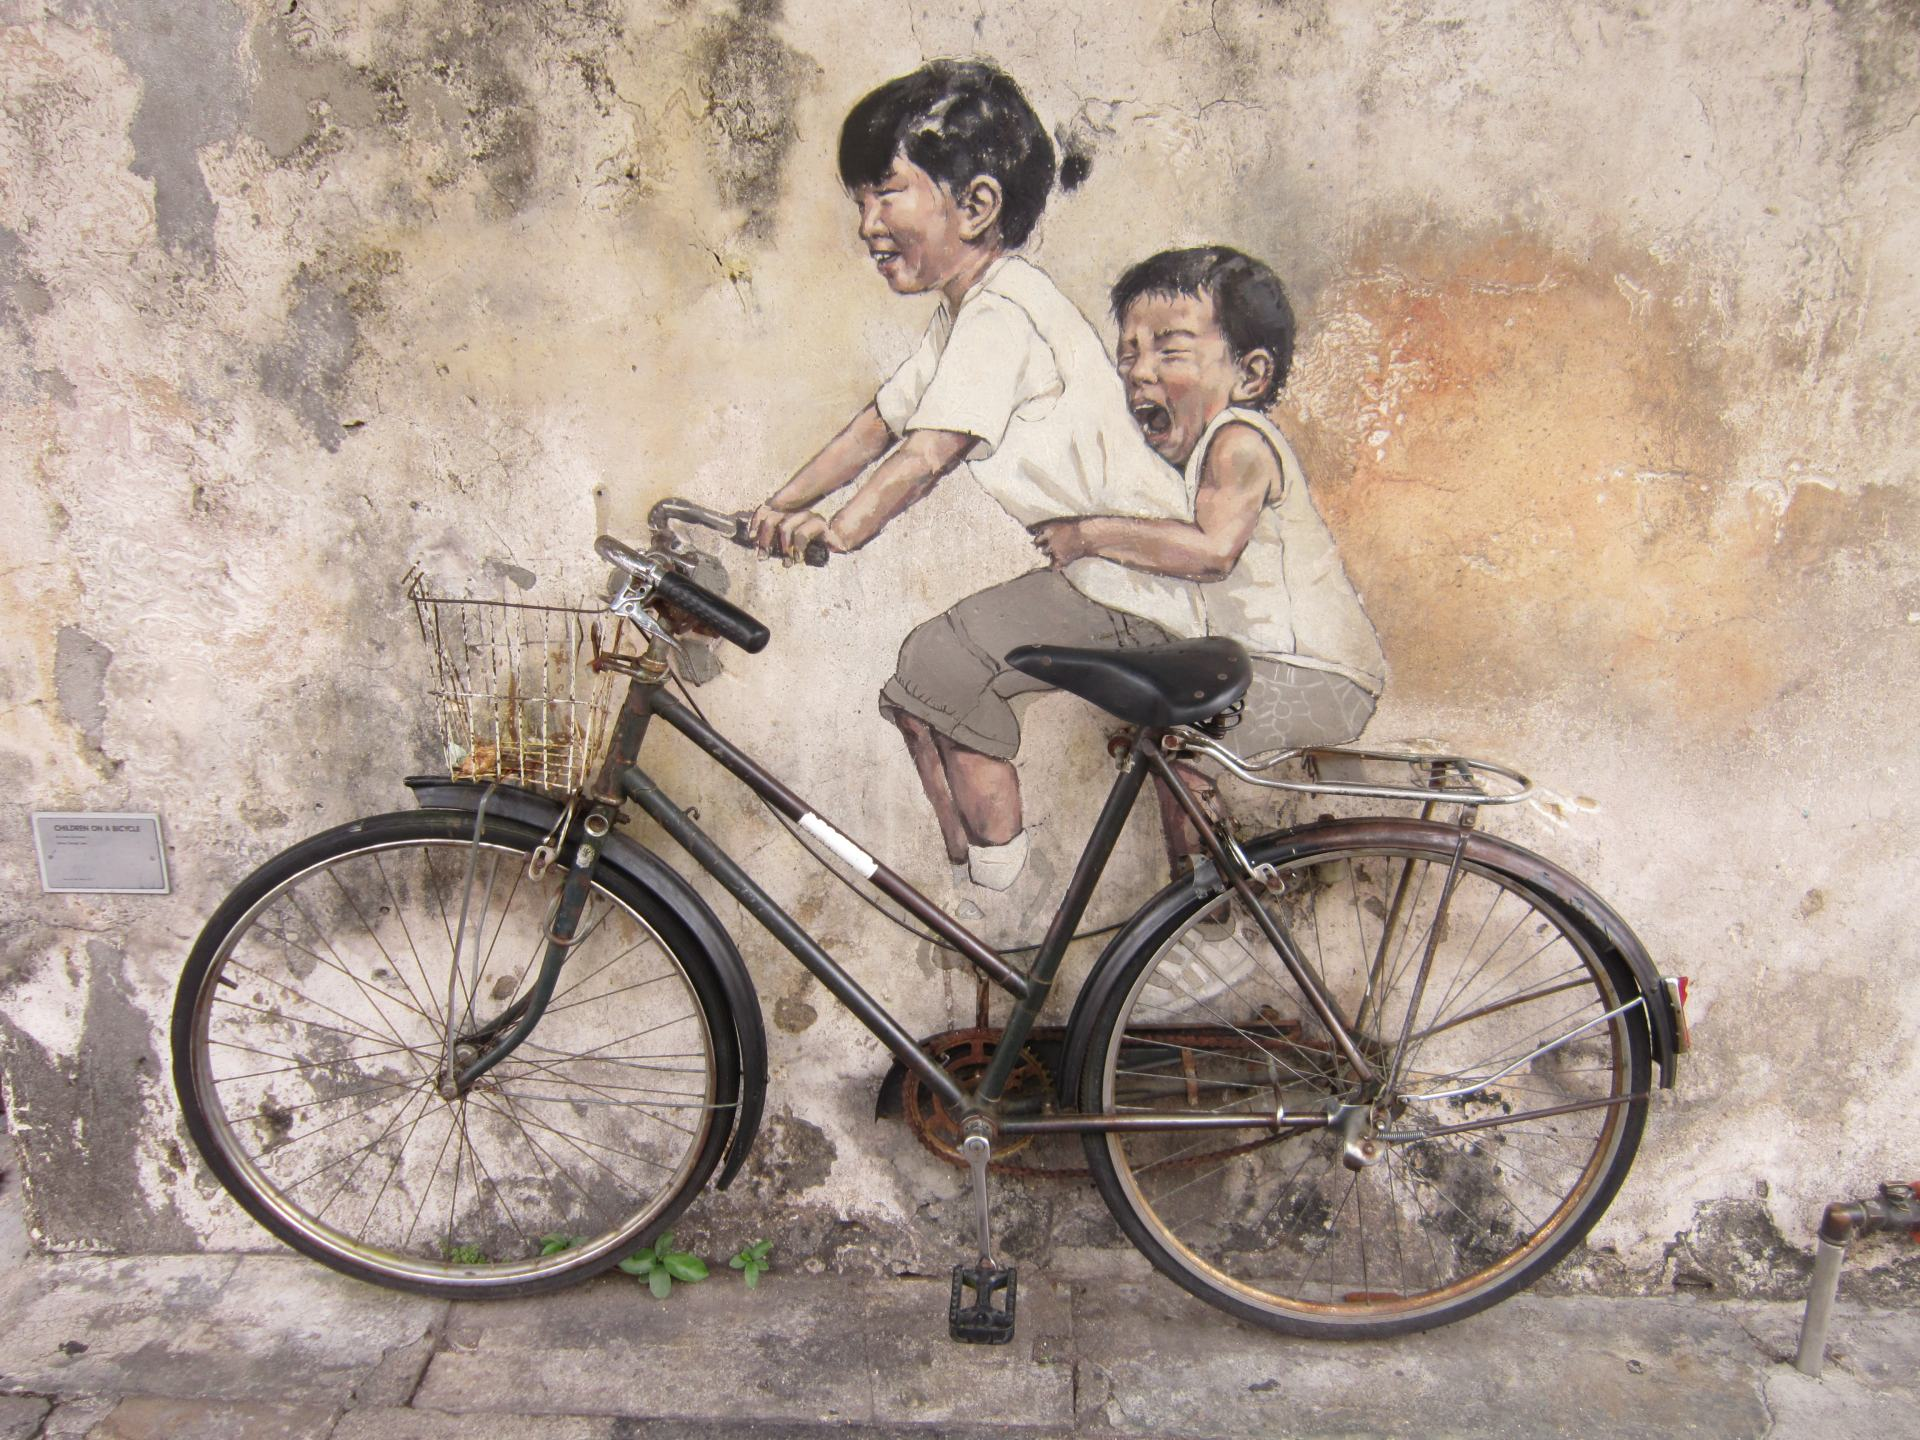 Street art of 2 children riding a bike in George Town. Its one of the best cities in Southeast Asia to see street art. The bike is real, attached to the wall.